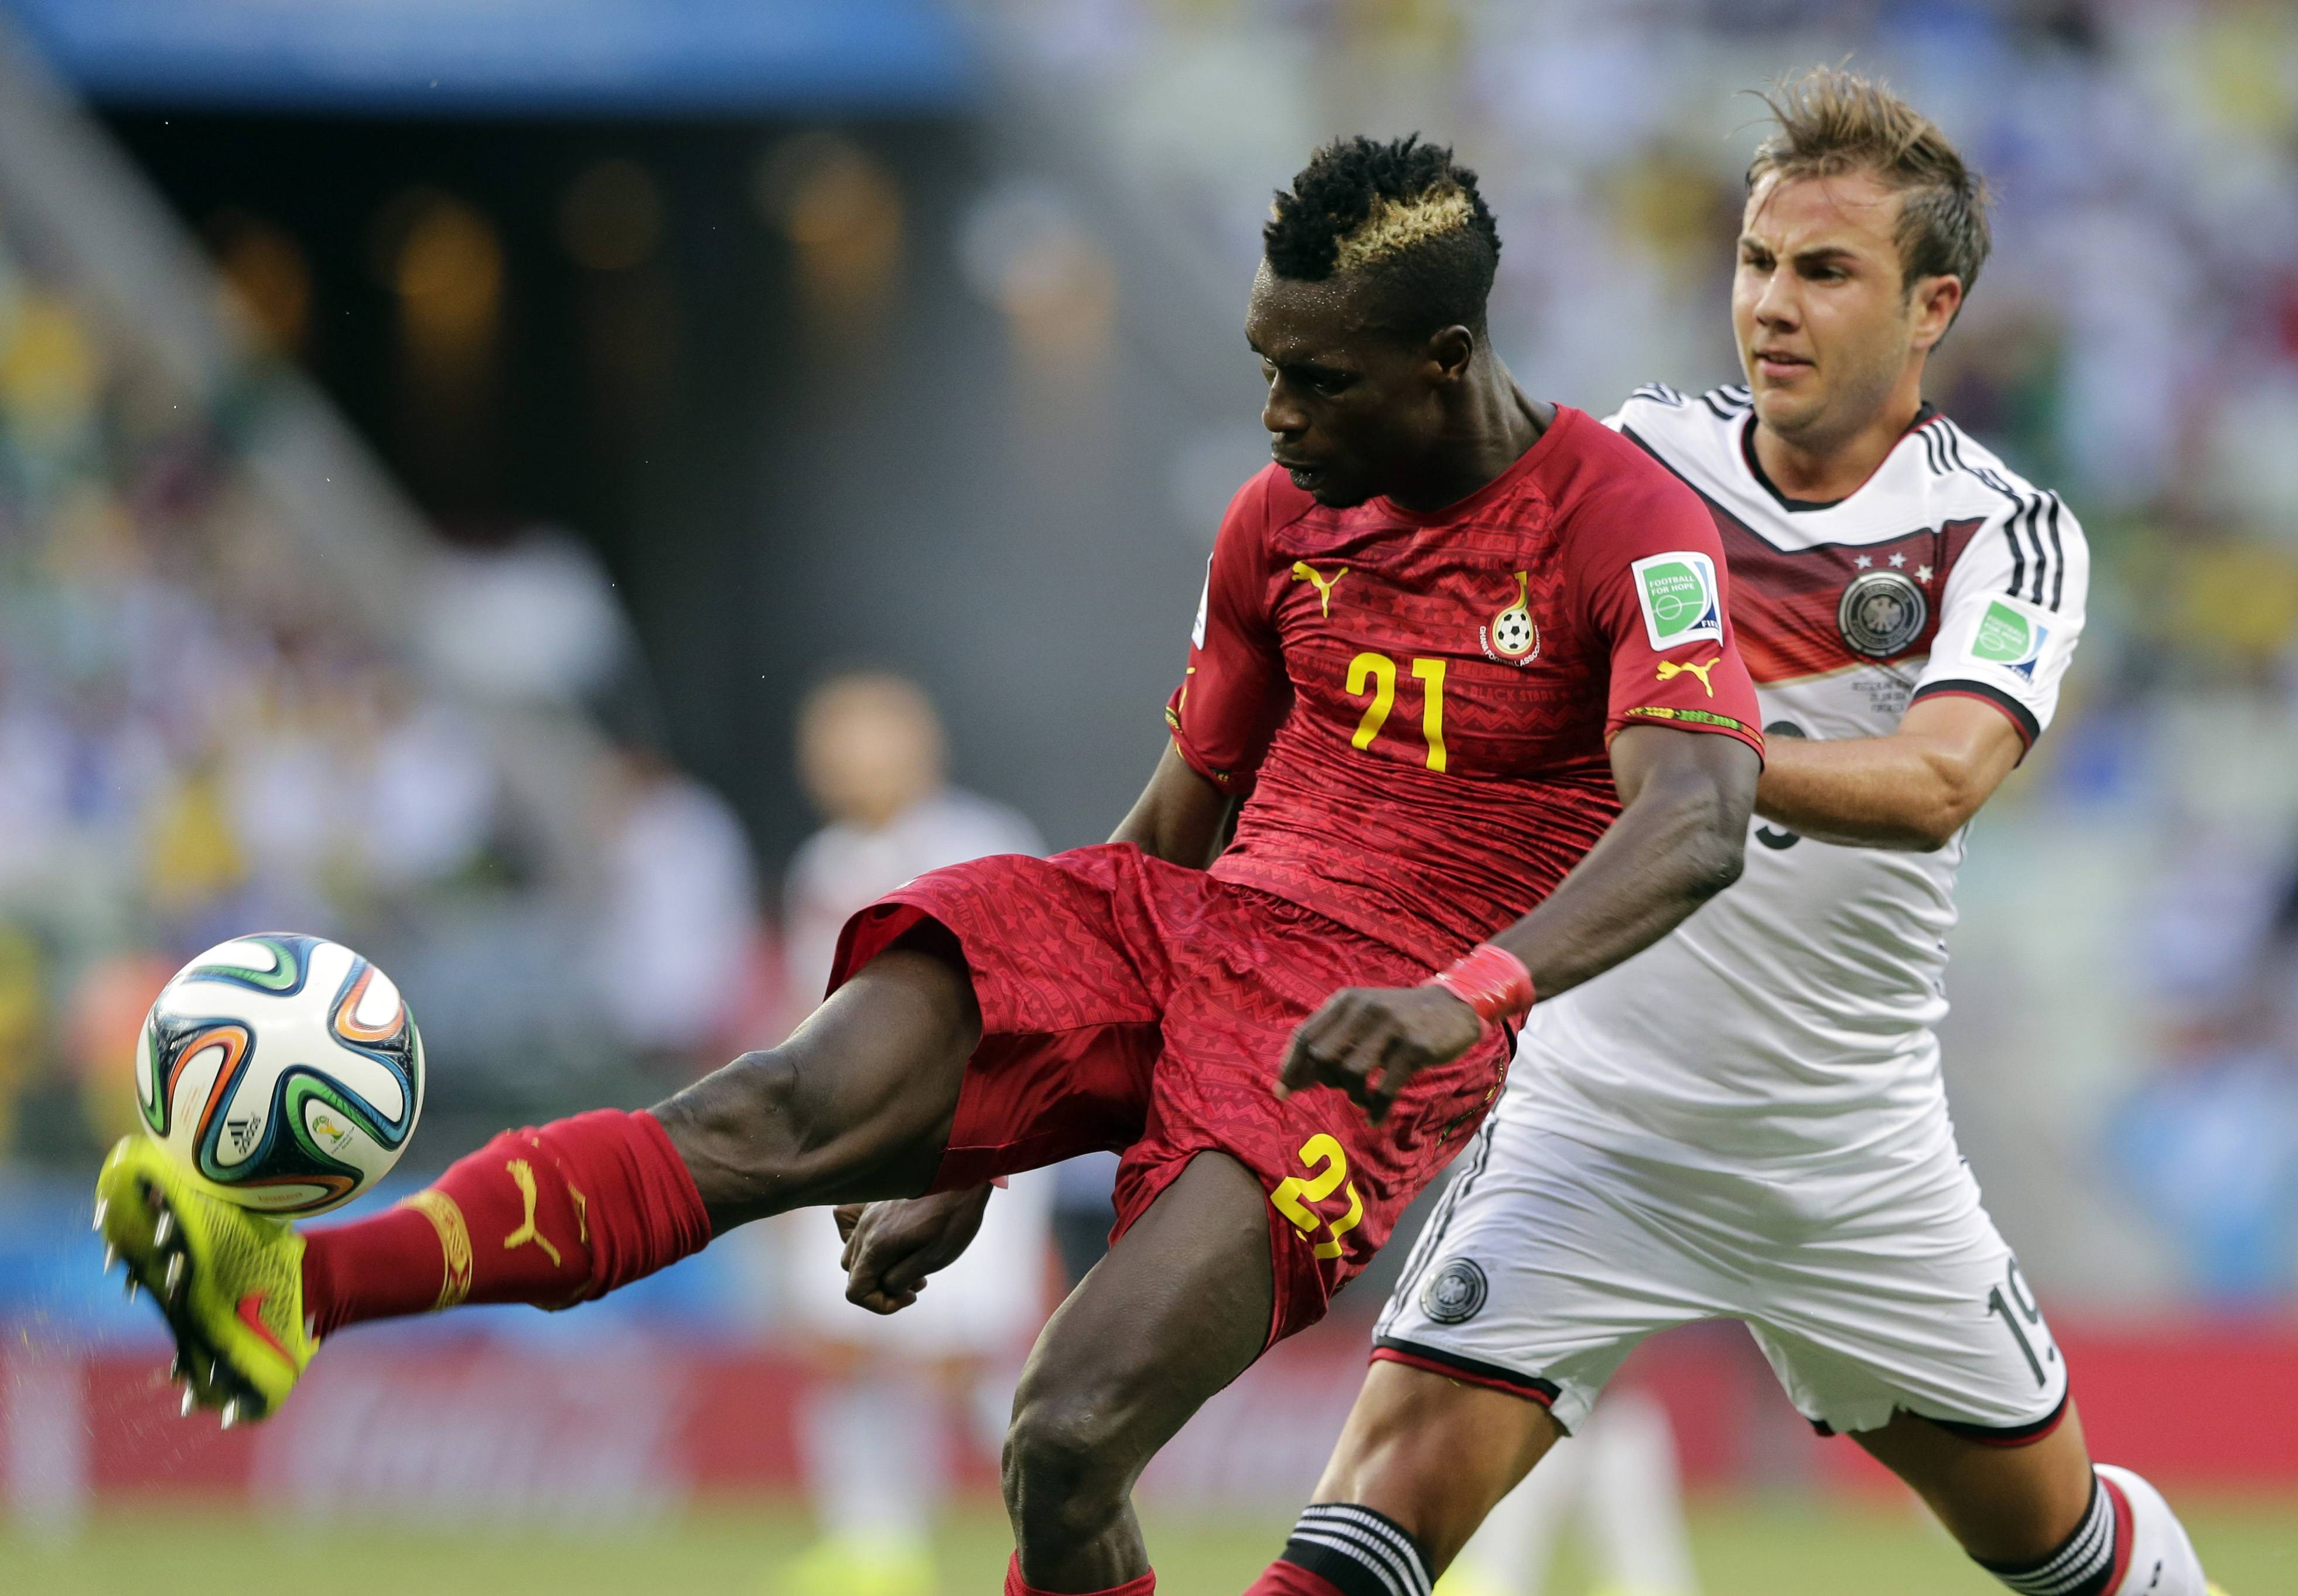 Ghana's John Boye, left, clears the ball from Germany's Mario Goetze during the group G World Cup soccer match at the Arena Castelao in Fortaleza, Brazil, Saturday, June 21, 2014. (AP Photo/Matthias Schrader)